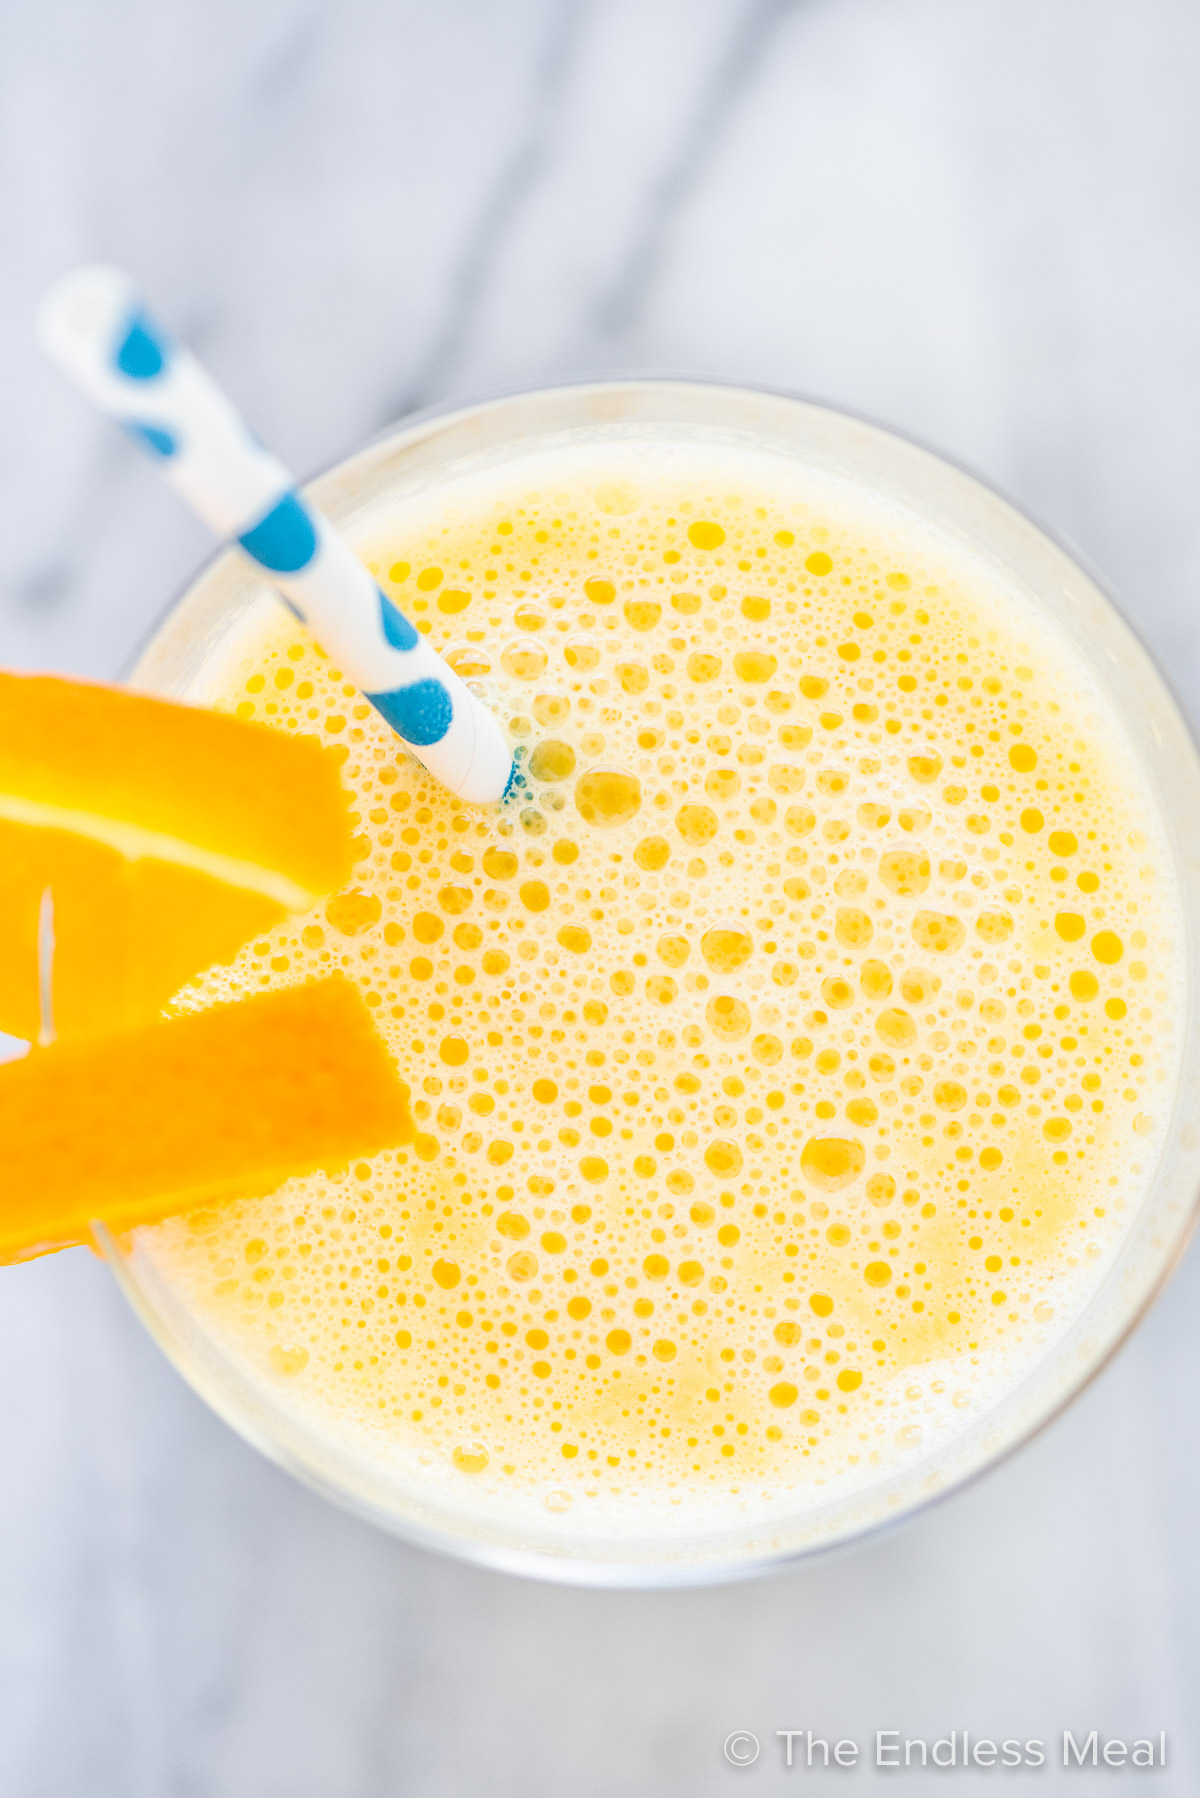 Looking down on an orange smoothie with a blue straw and orange slices.